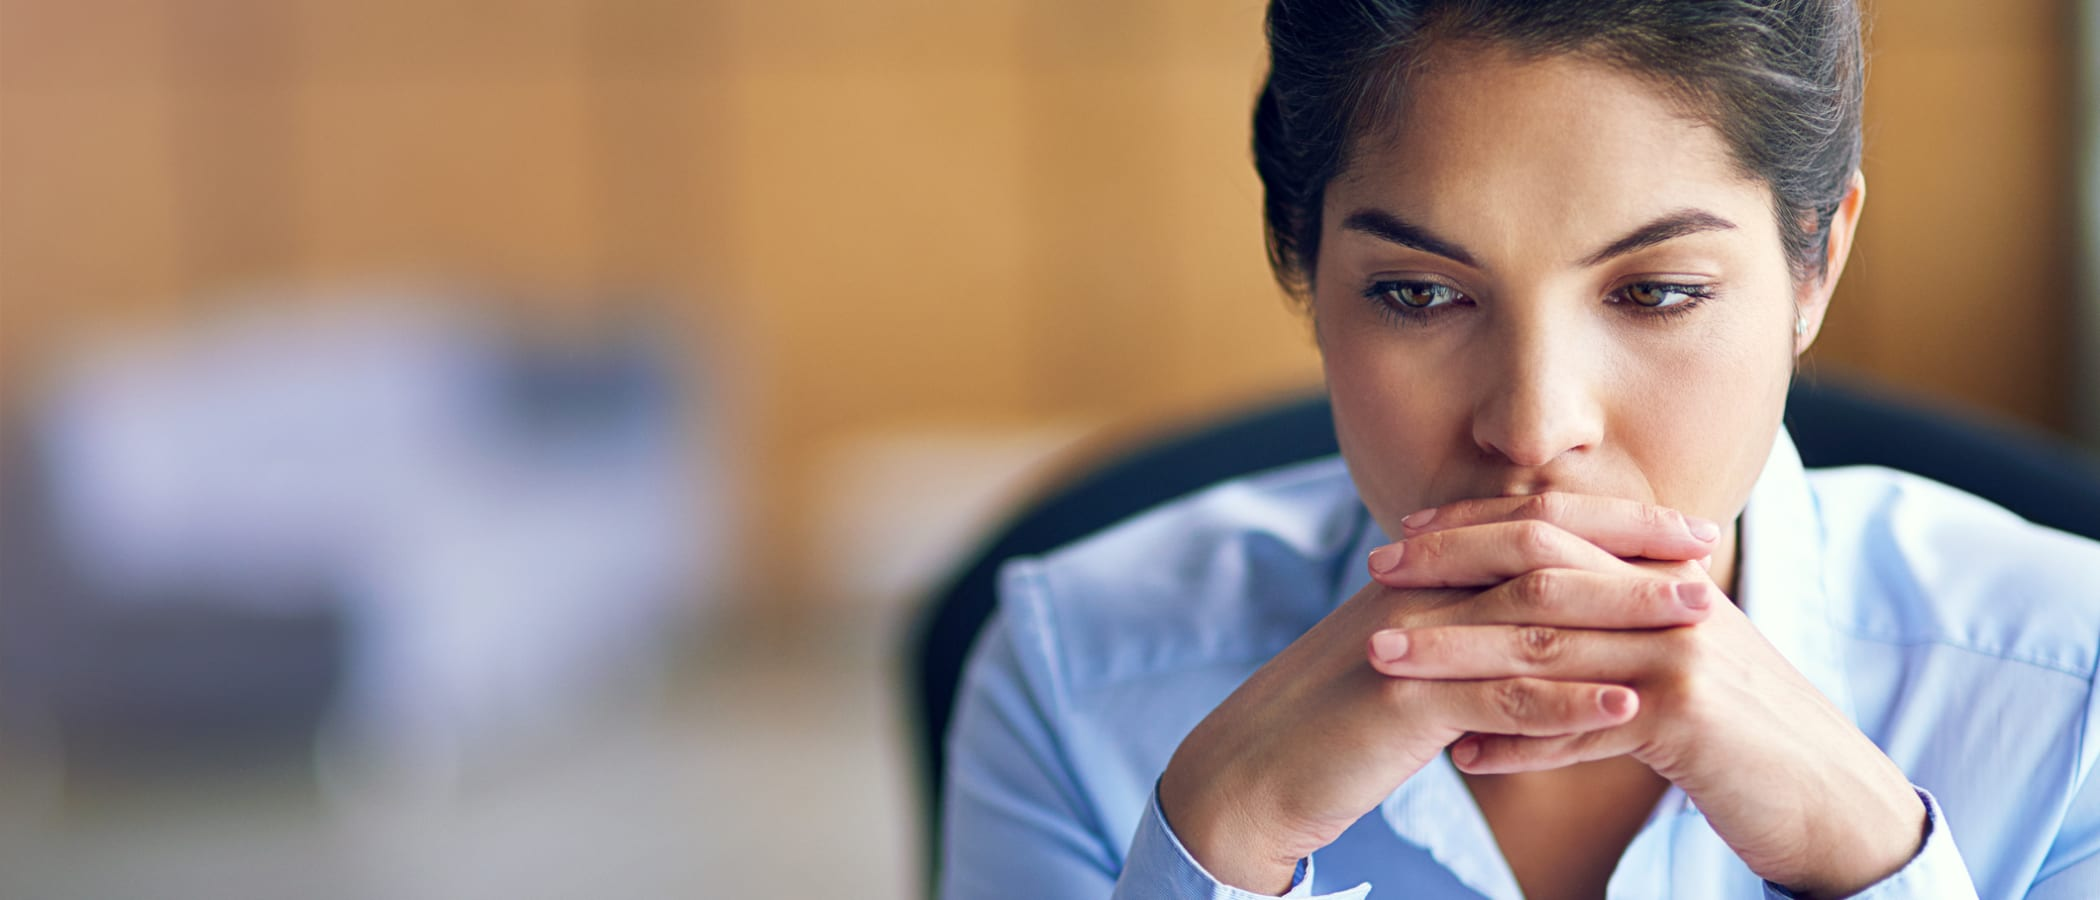 When Should Employers Tell Employees That Layoffs Are Looming?